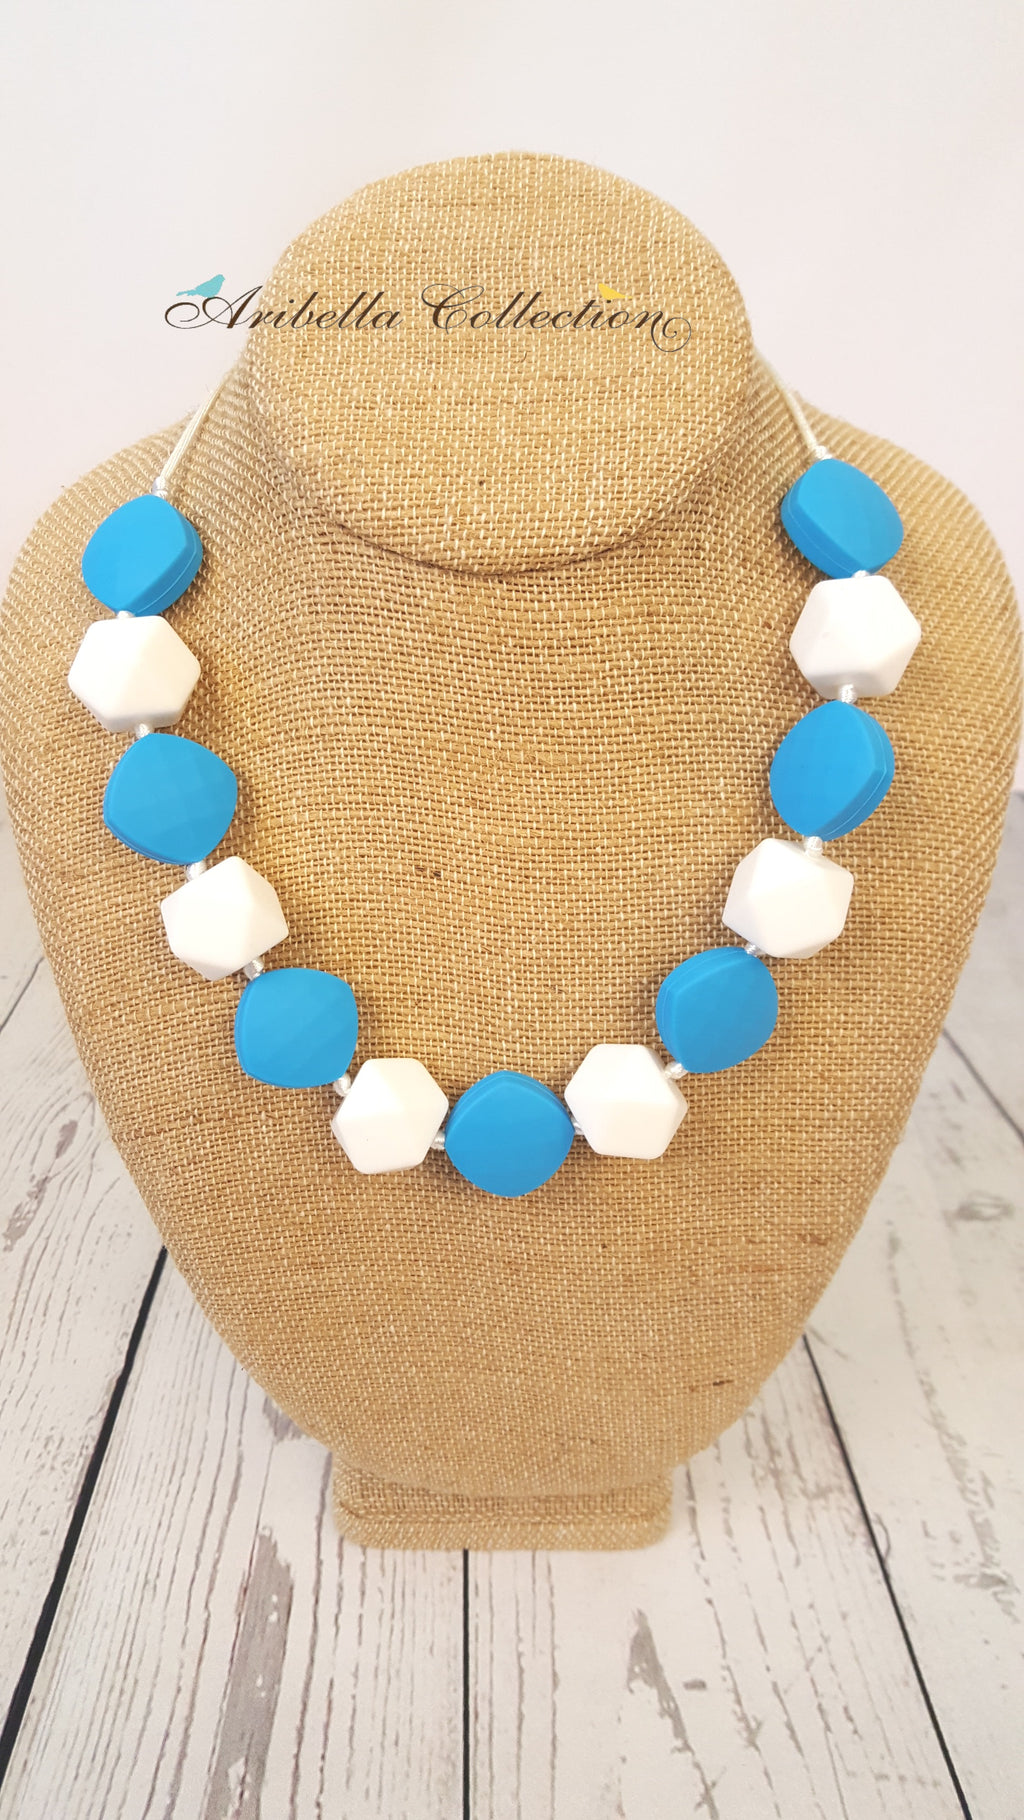 Silicone Necklace - Blue/White - Aribella Collection